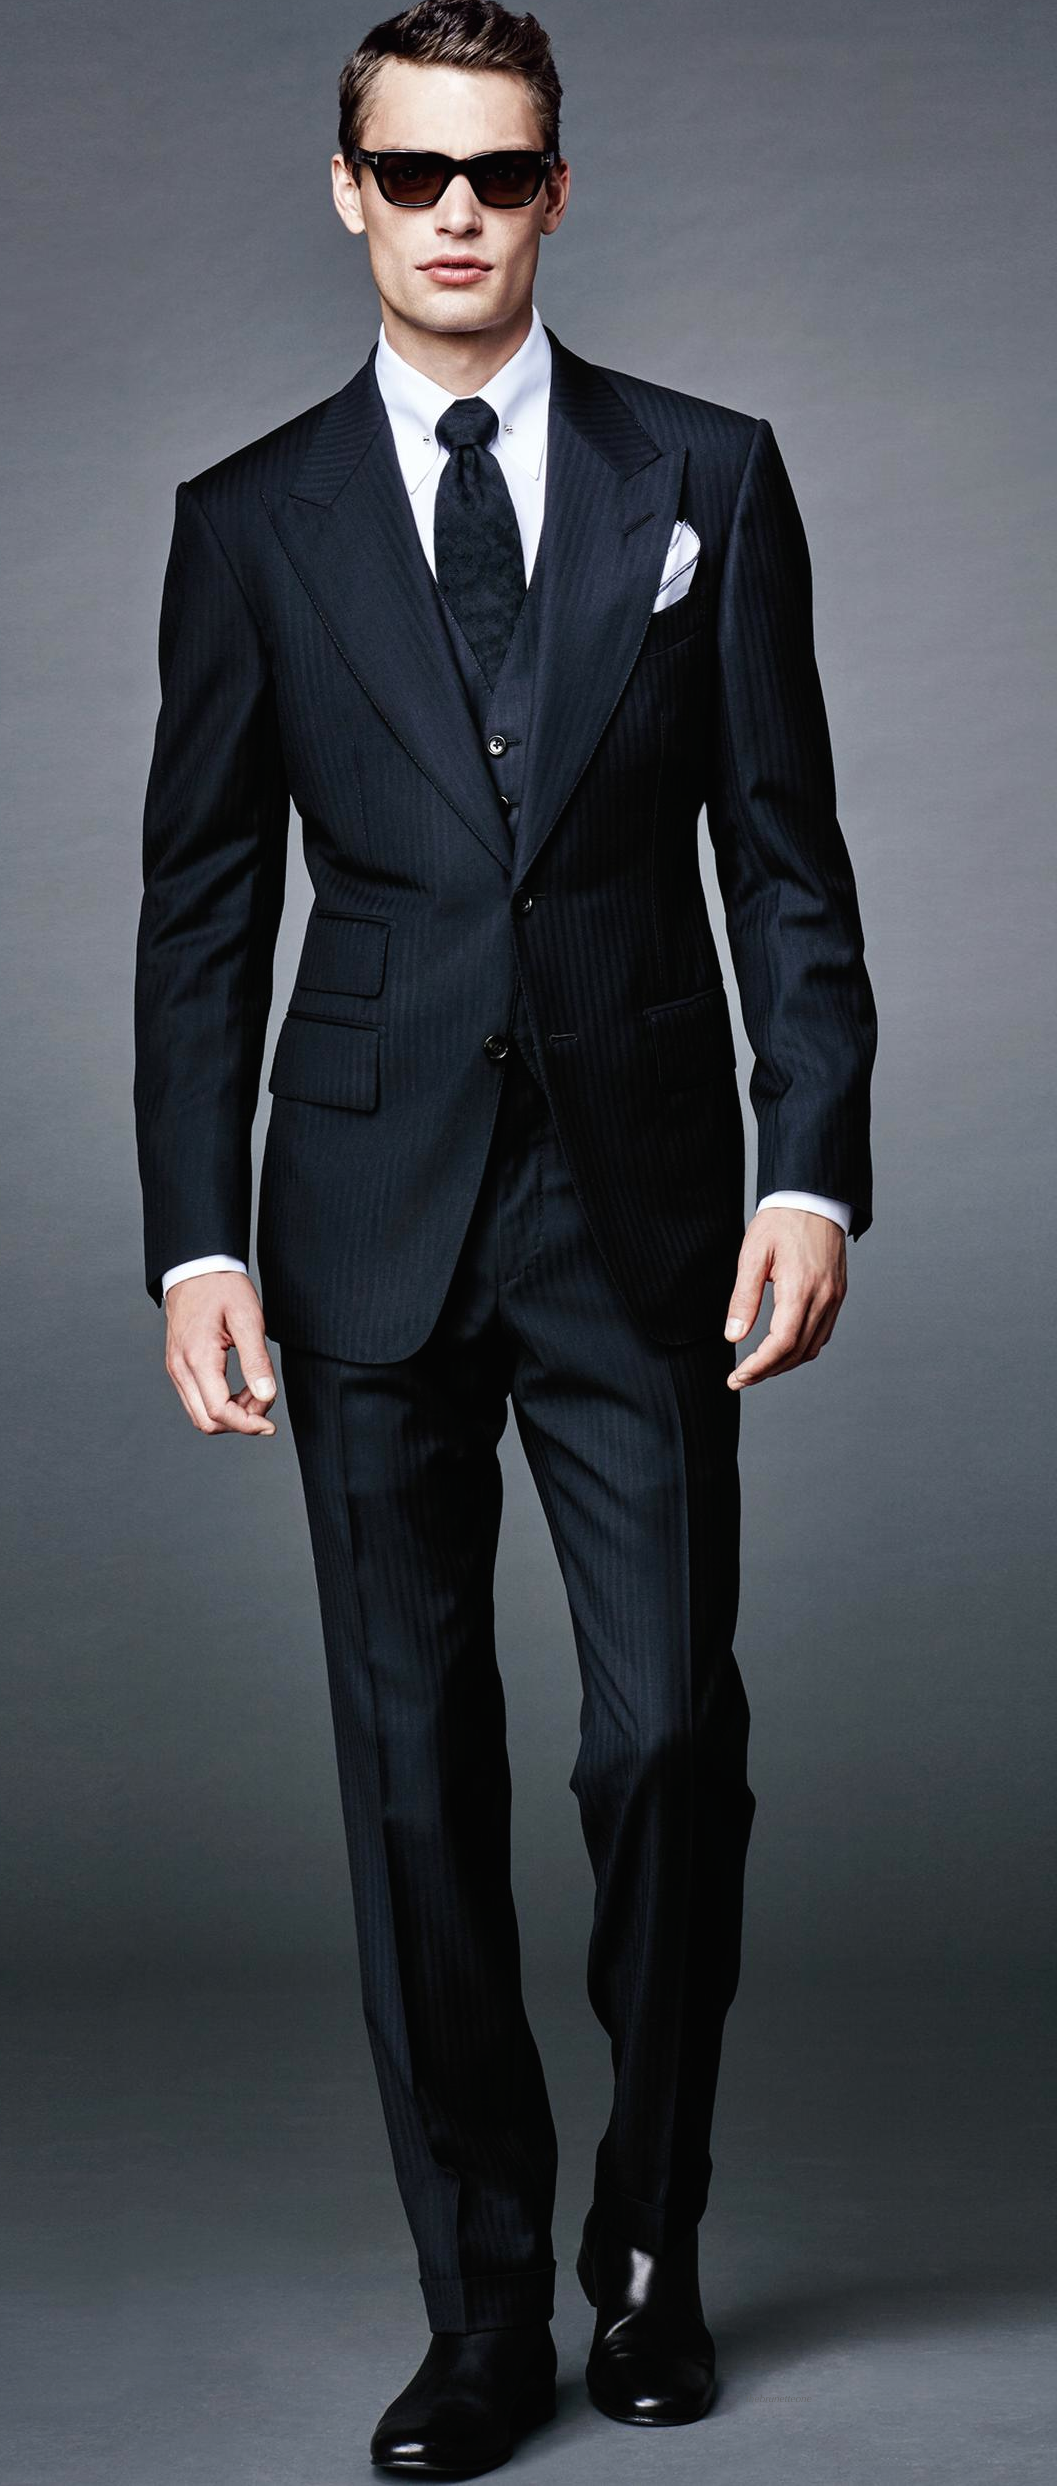 a6f27bba8e Gage wore this to the Critic's Choice Awards - ONE PERFECT MOMENT Tom Ford  bond collection 16